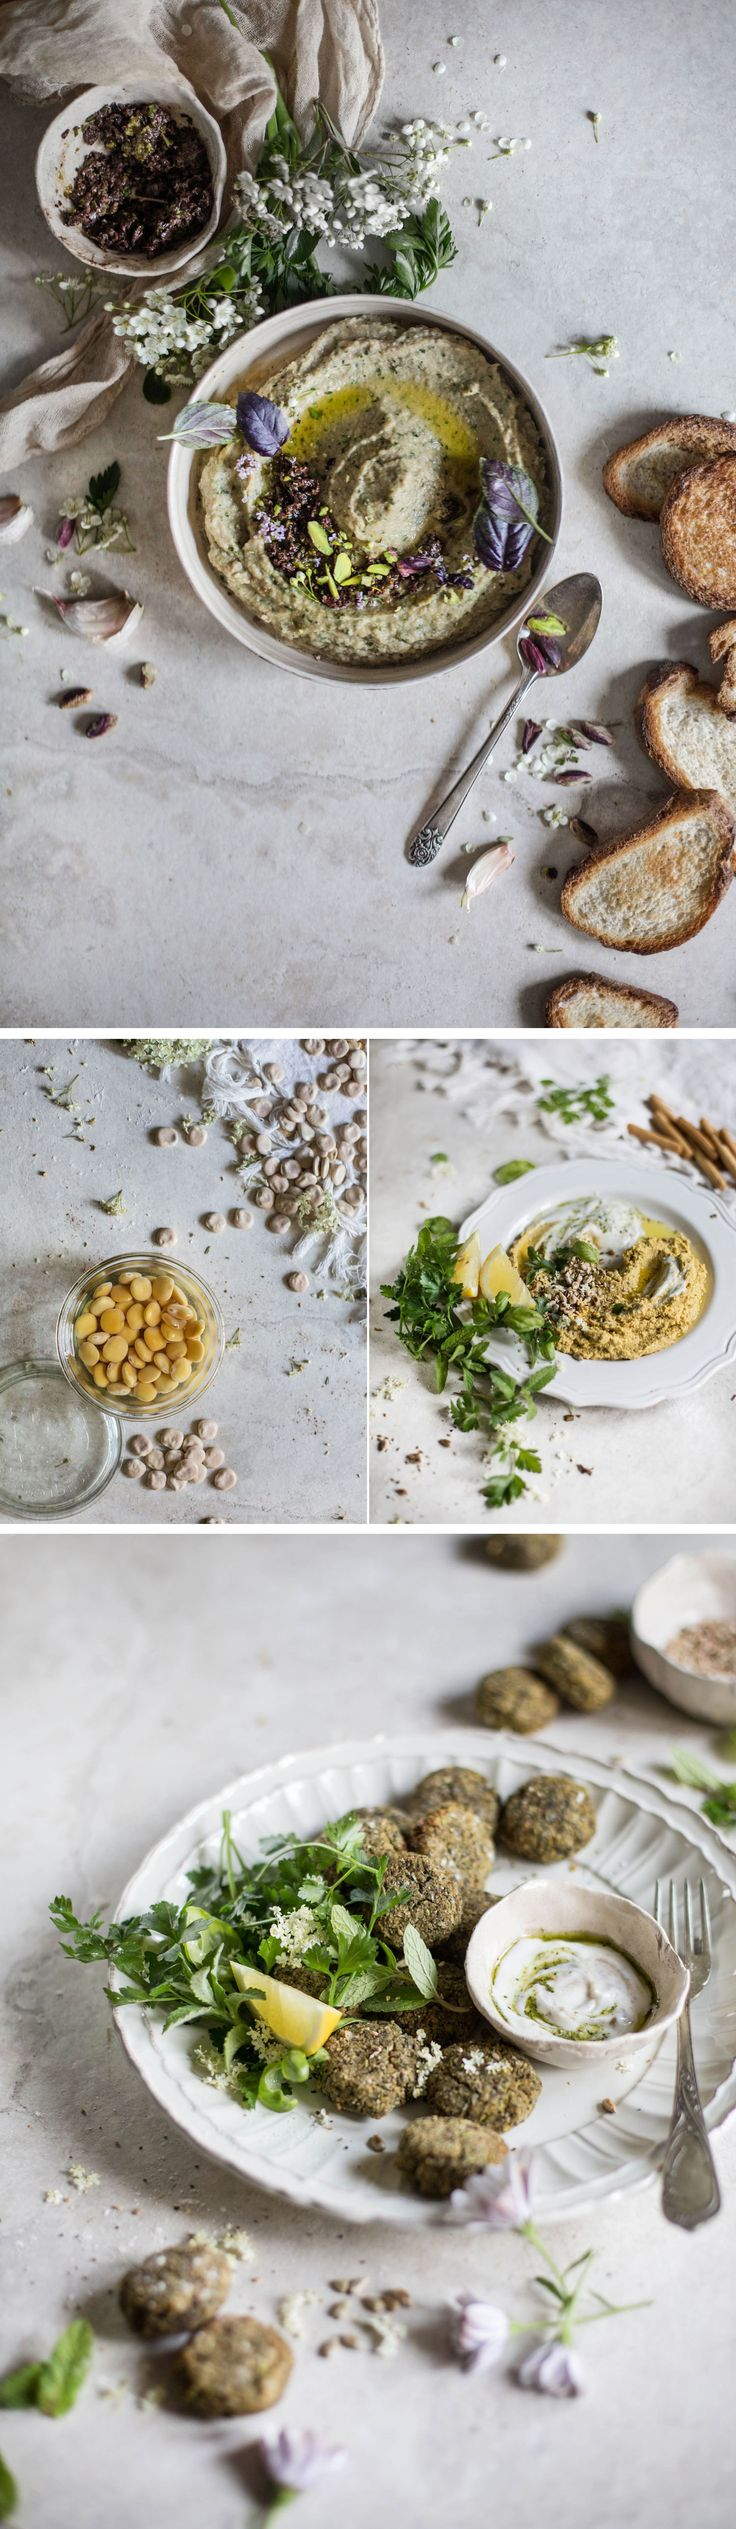 3 Quick, Healthy & Vegan Recipes with Lupini Beans (or Chickpeas)